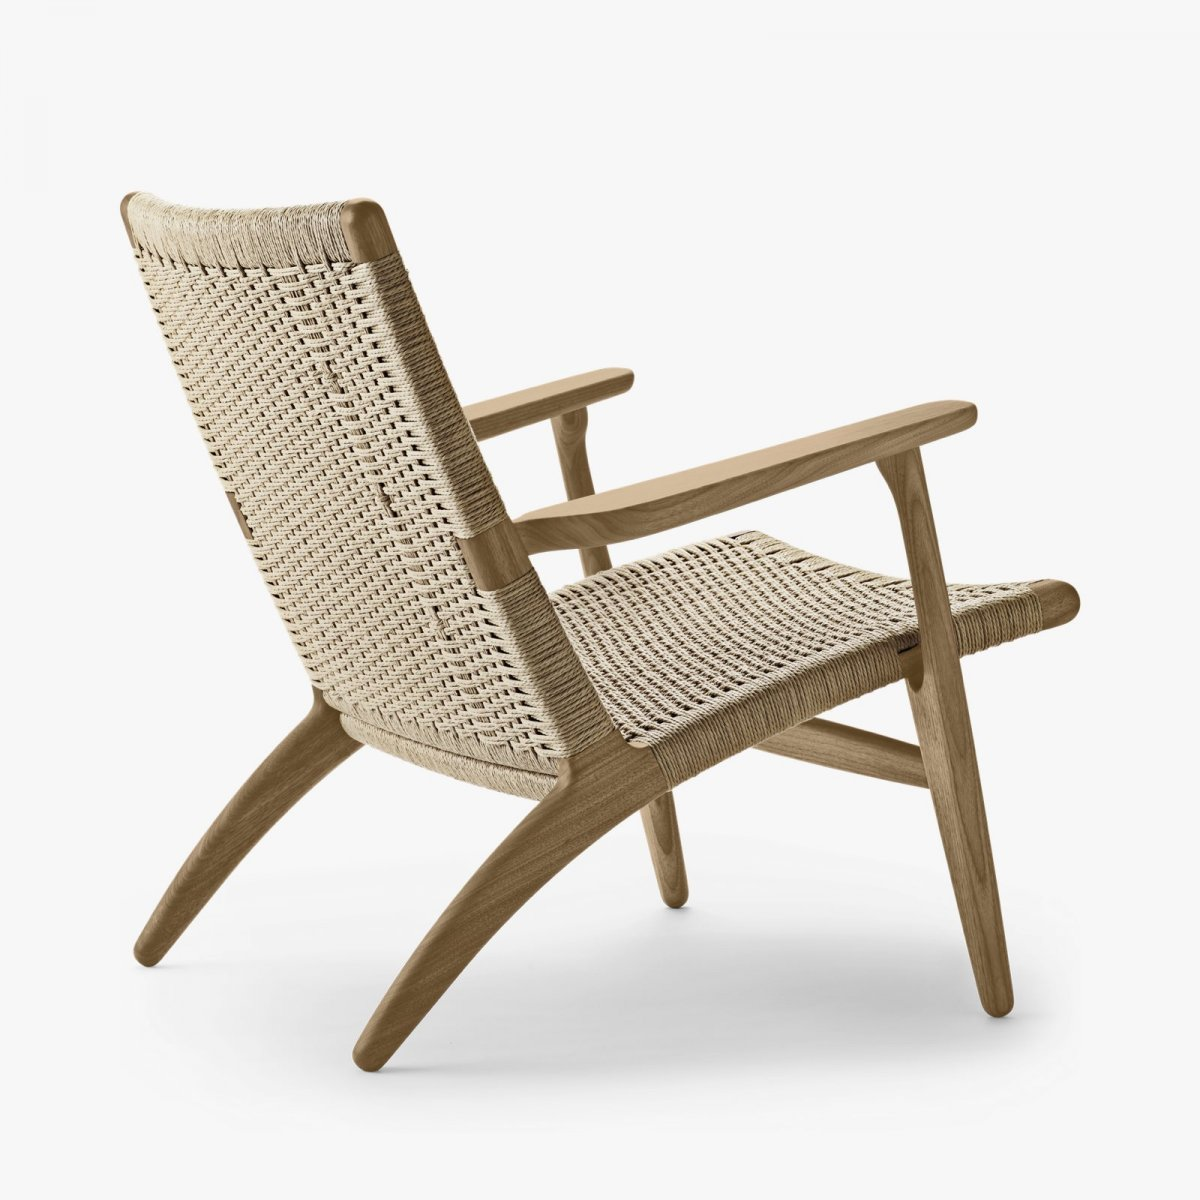 CH25 Lounge Chair, oiled oak with natural cord.